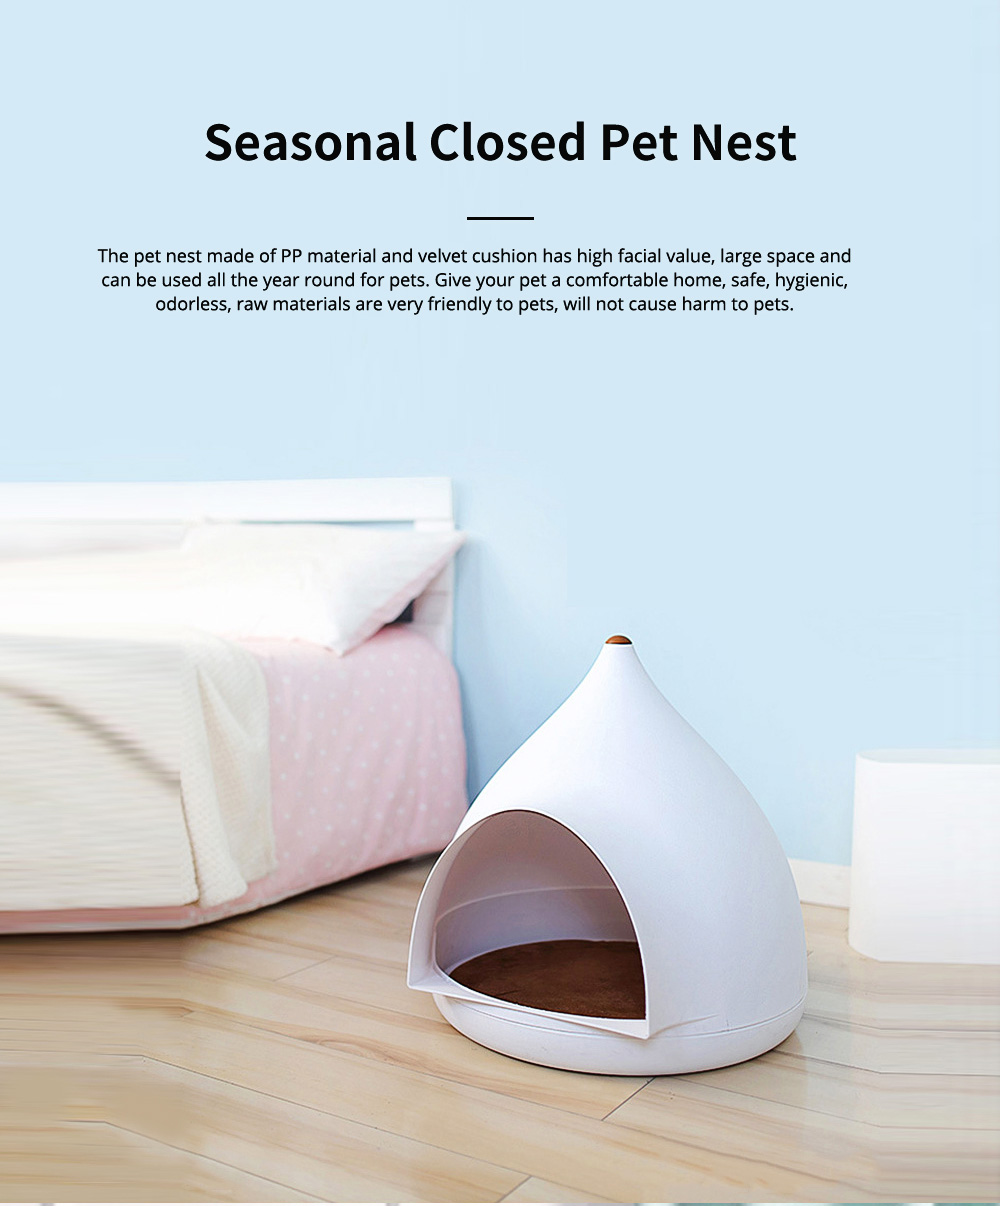 Seasonal Closed Pet Nest Summer Kennels Pet House for Small Dogs Droplet Shape Cat's Nest Bed 0